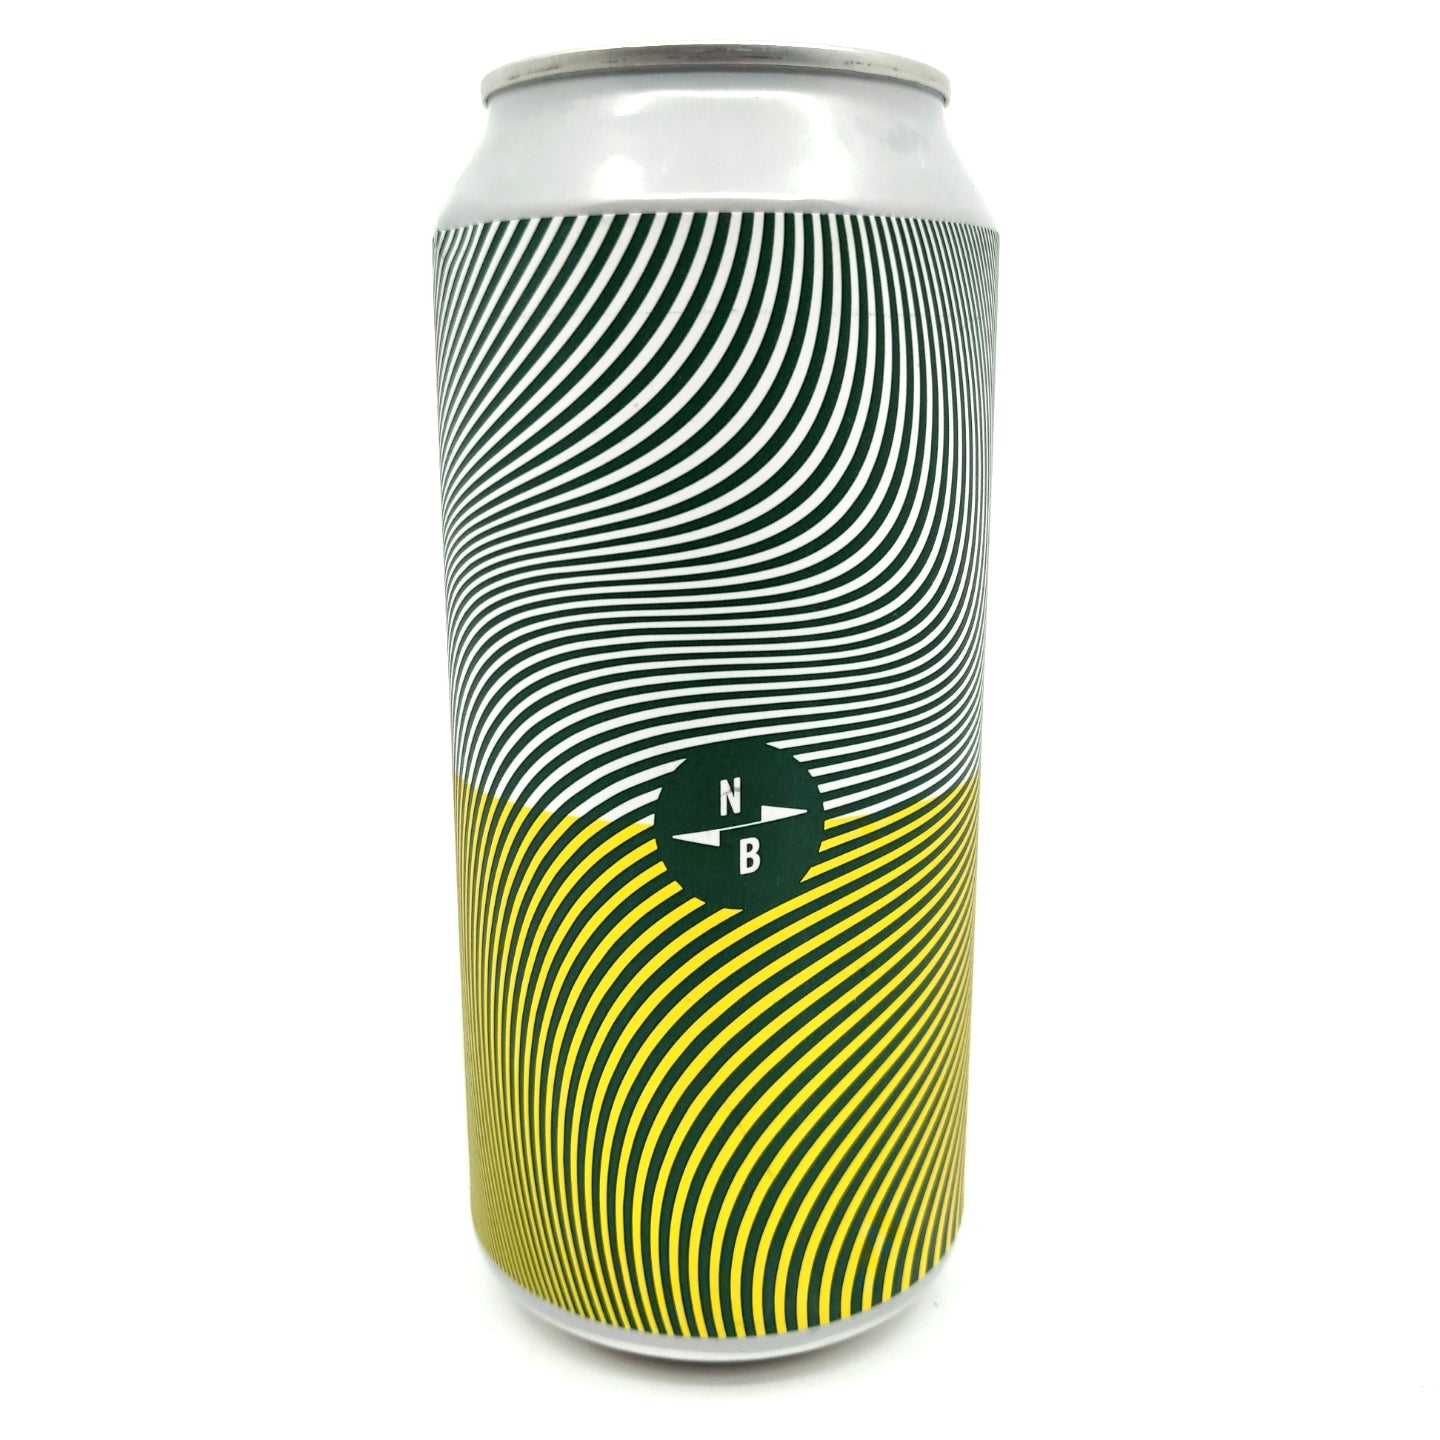 North Brewing Co x Gipsy Hill Triple Fruited Gose White Peach & Jasmine 4.5% (440ml can)-Hop Burns & Black